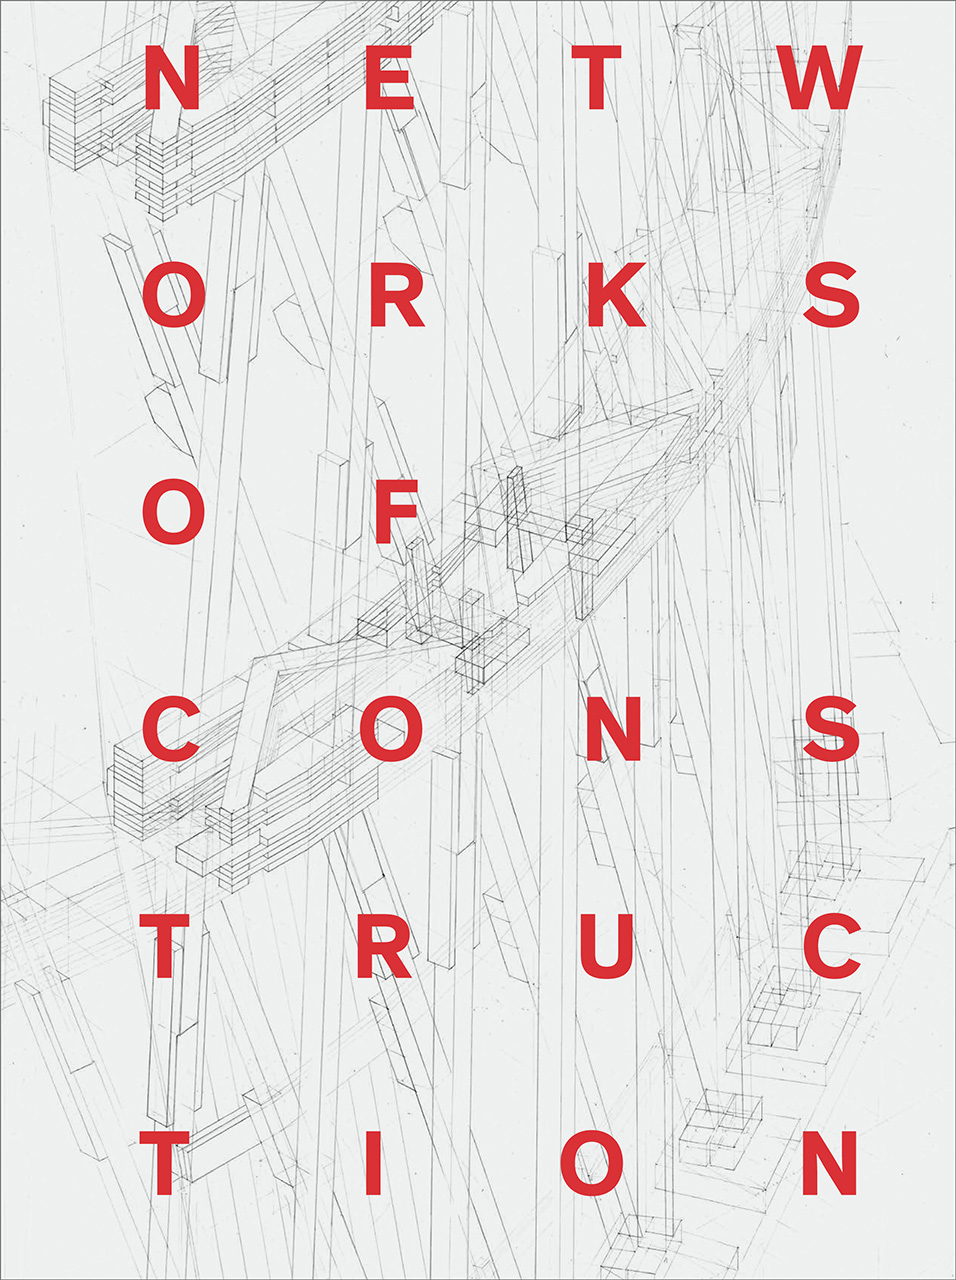 Networks of Construction